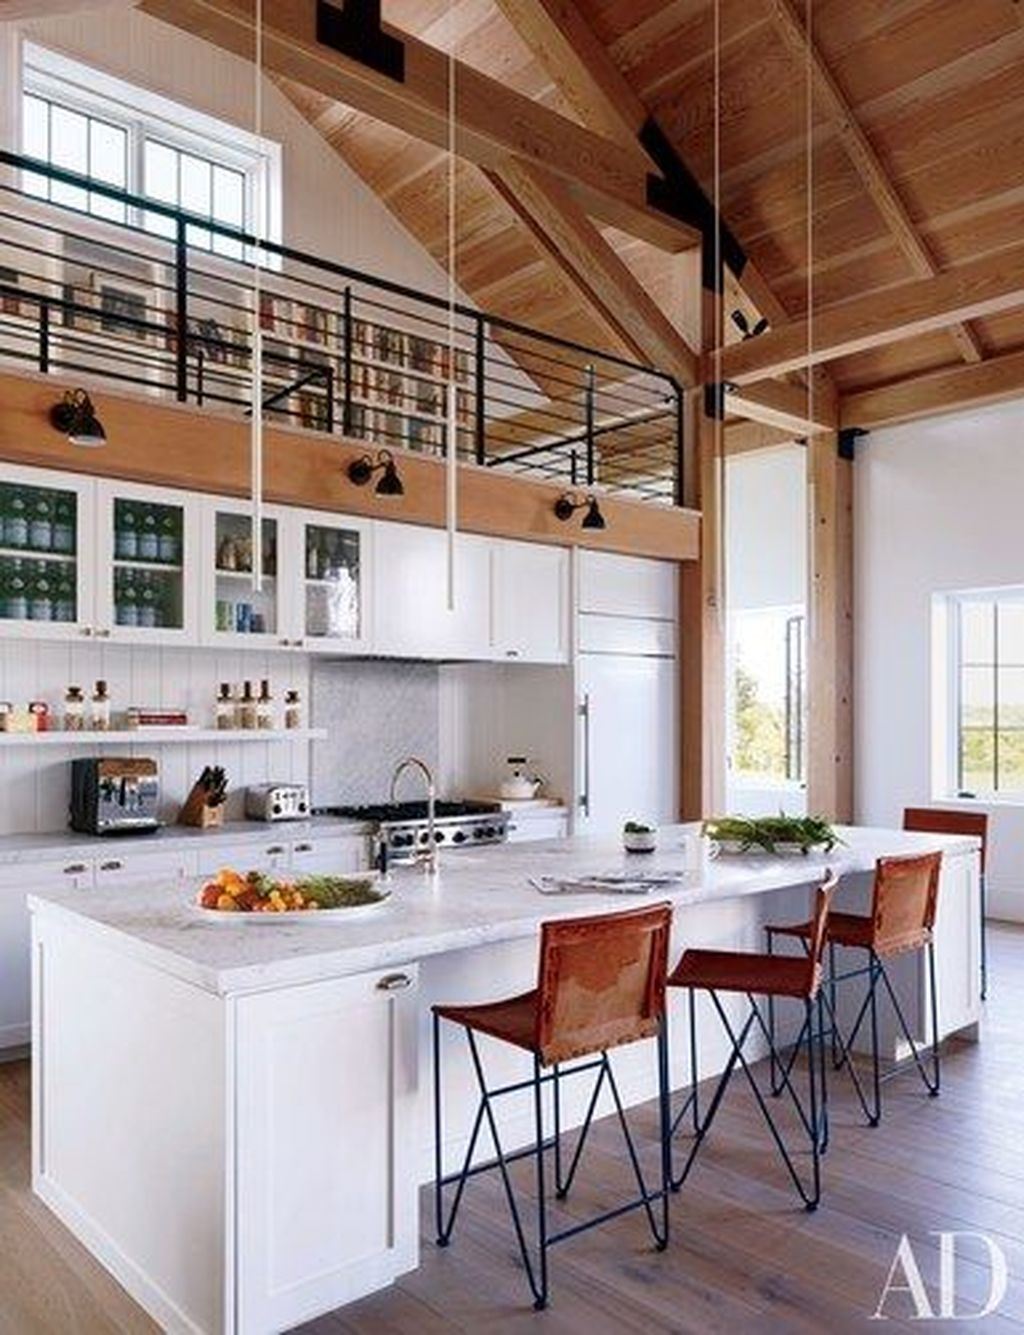 Extraordinary Home Design Ideas To Try Right Now 31